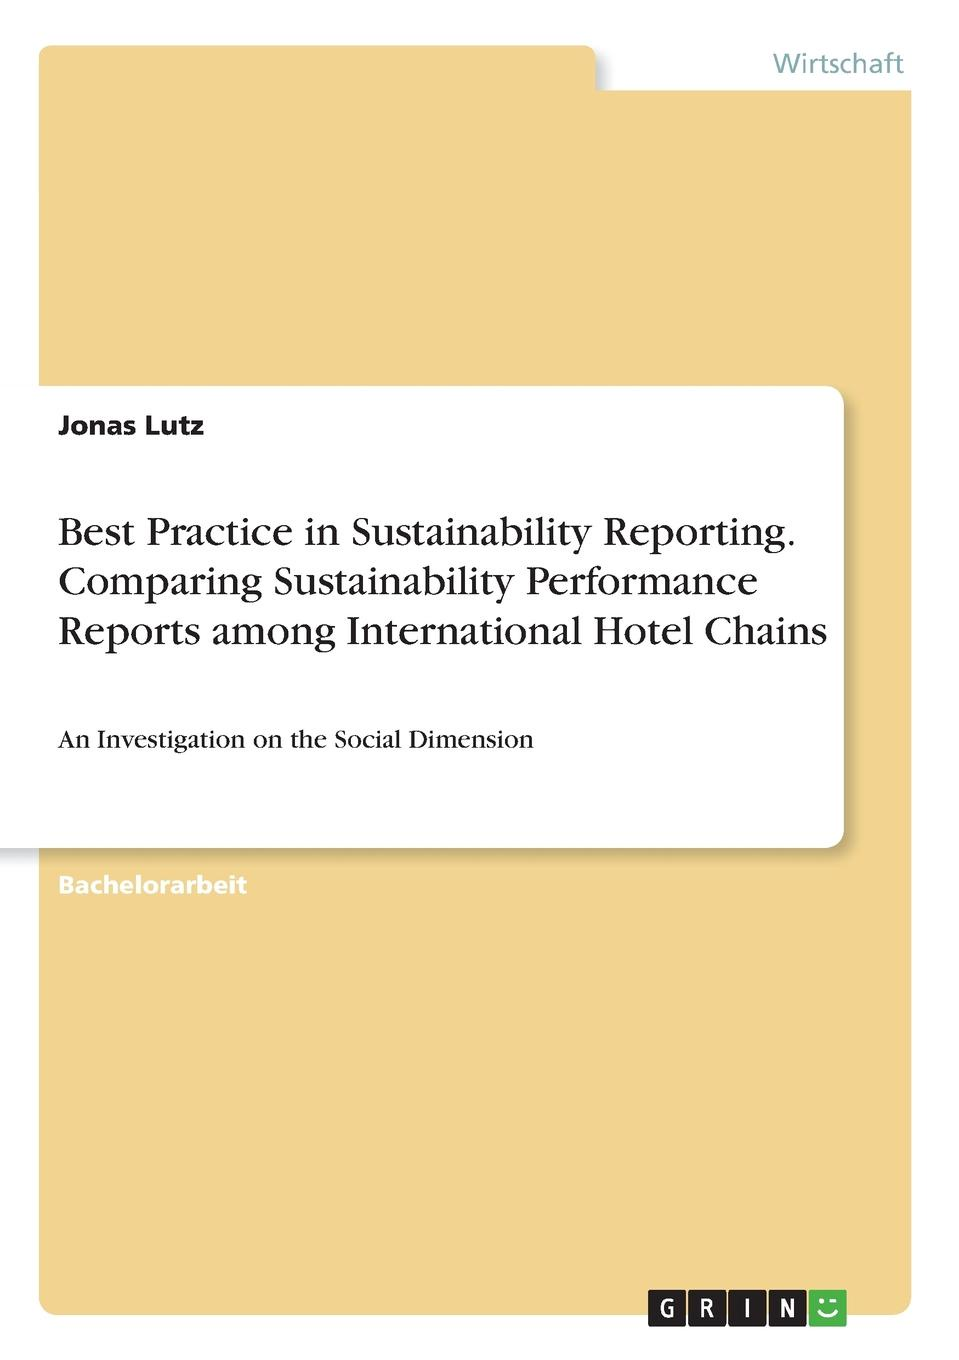 Jonas Lutz Best Practice in Sustainability Reporting. Comparing Sustainability Performance Reports among International Hotel Chains water environment federation sustainability reporting statements for wastewater systems